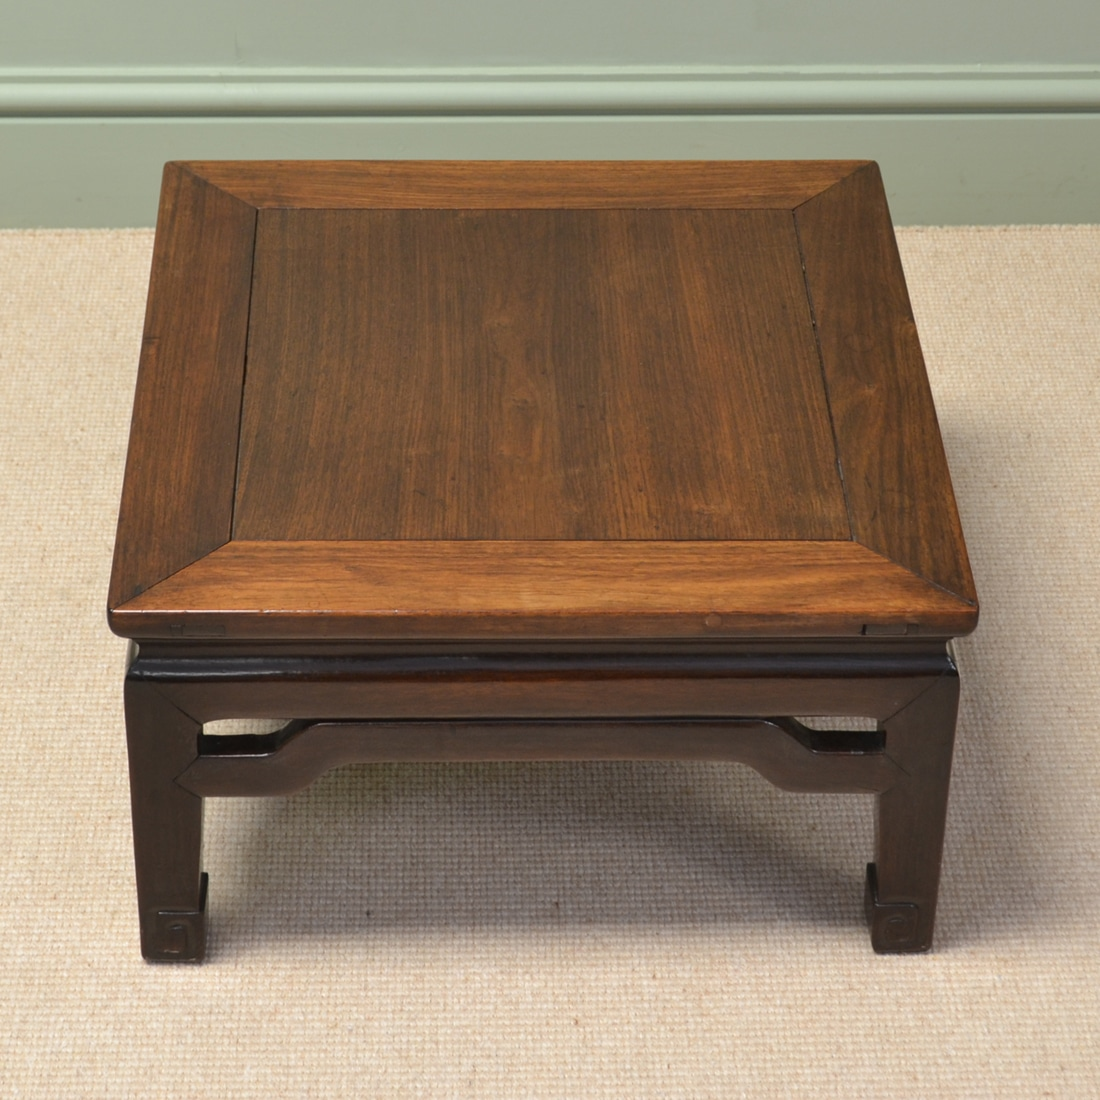 Antique Coffee Table Uk: Small Chinese Antique Coffee Table